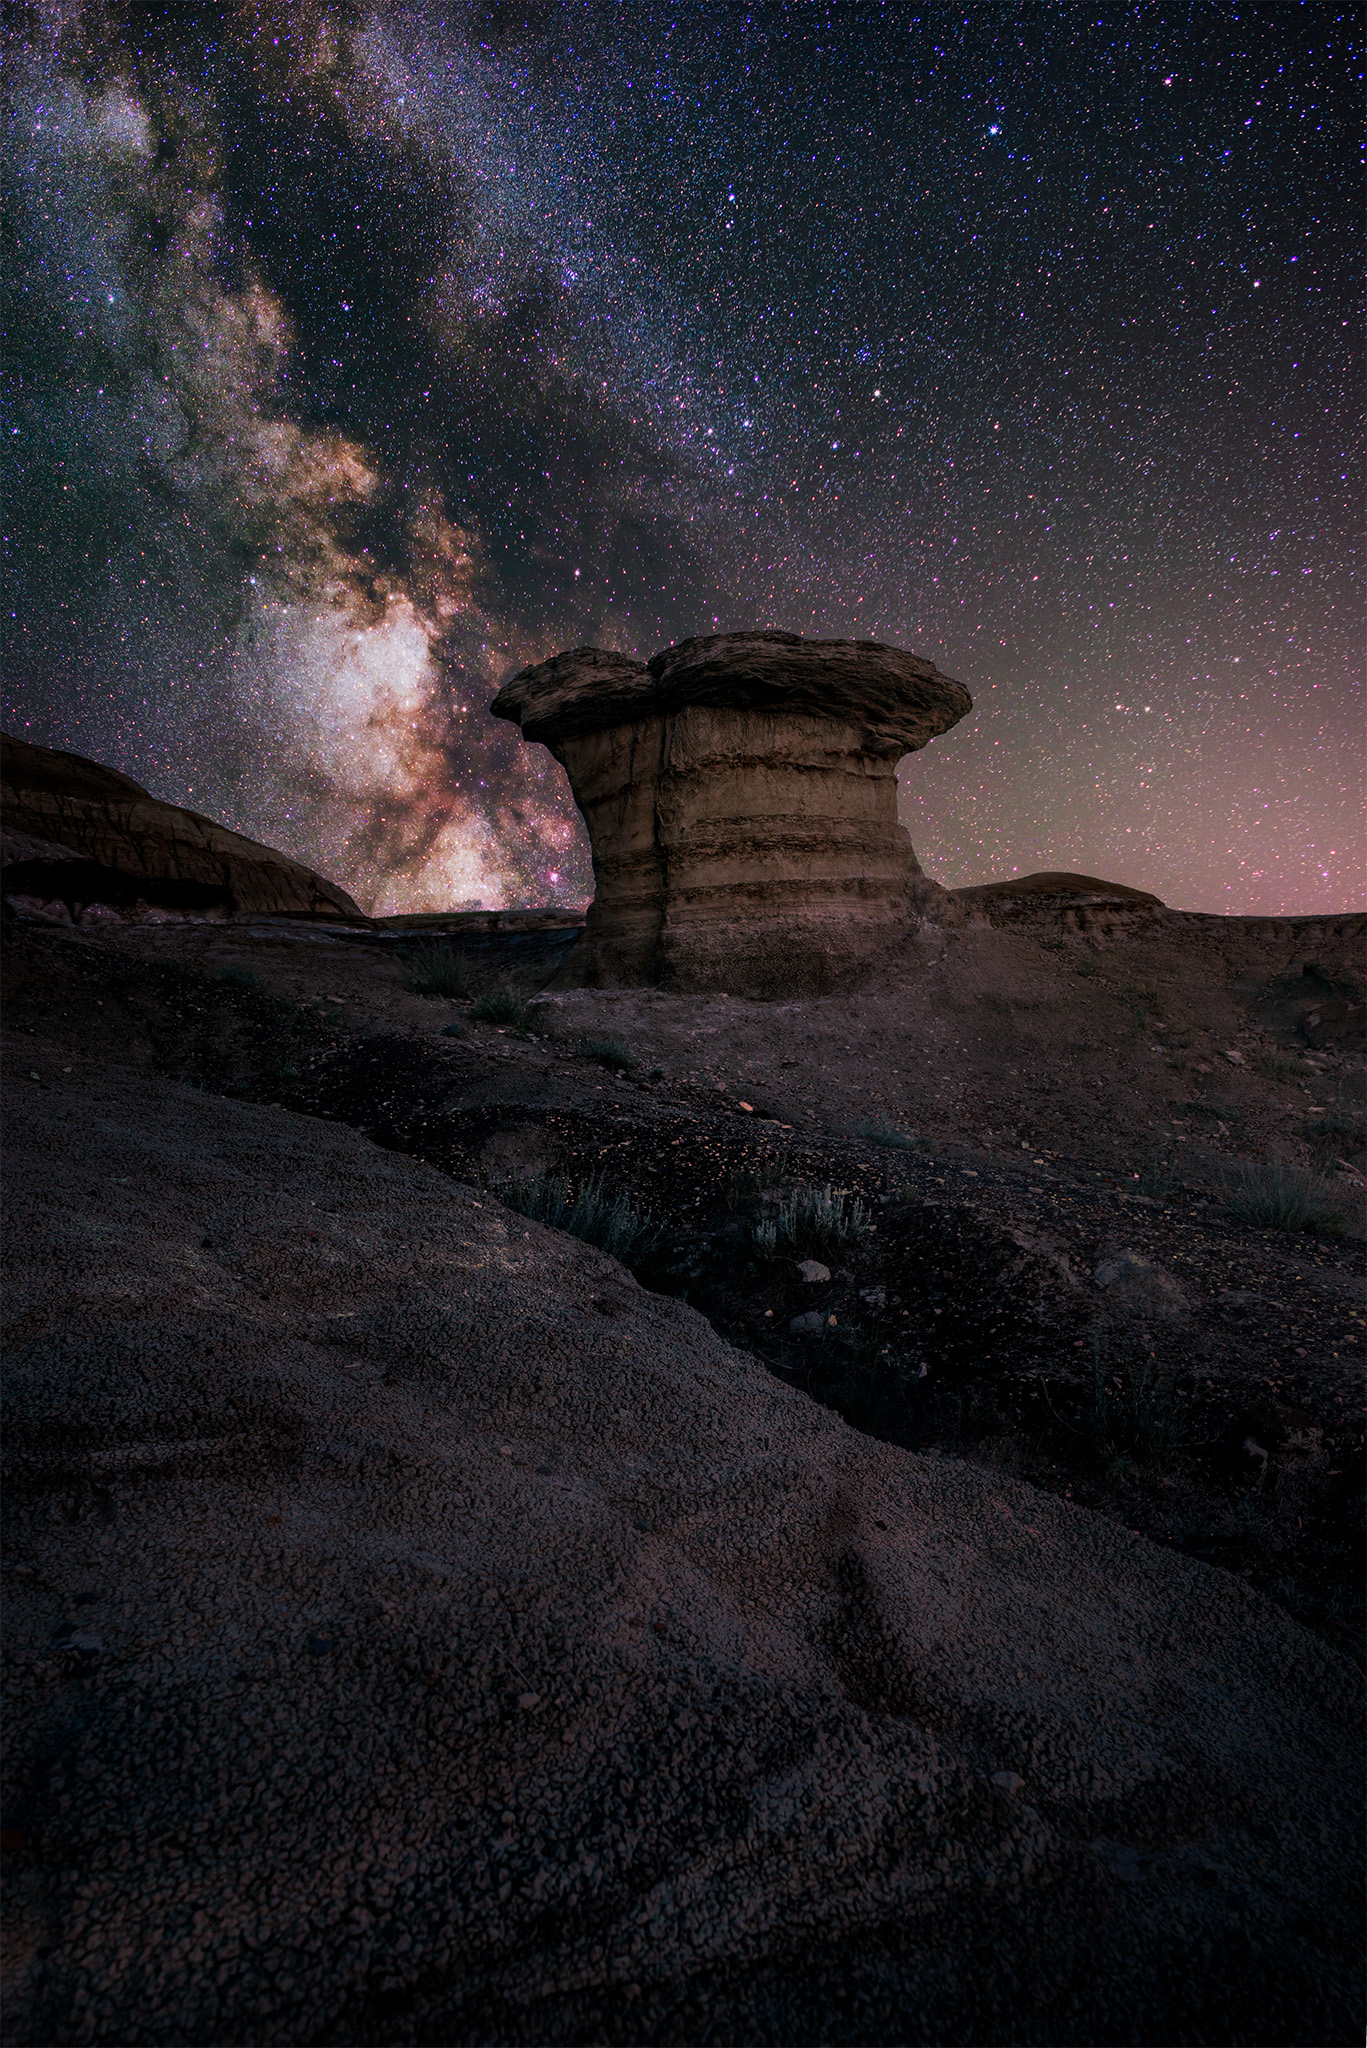 A hoodoo in Avonlea, Saskatchewan with the milky way over it